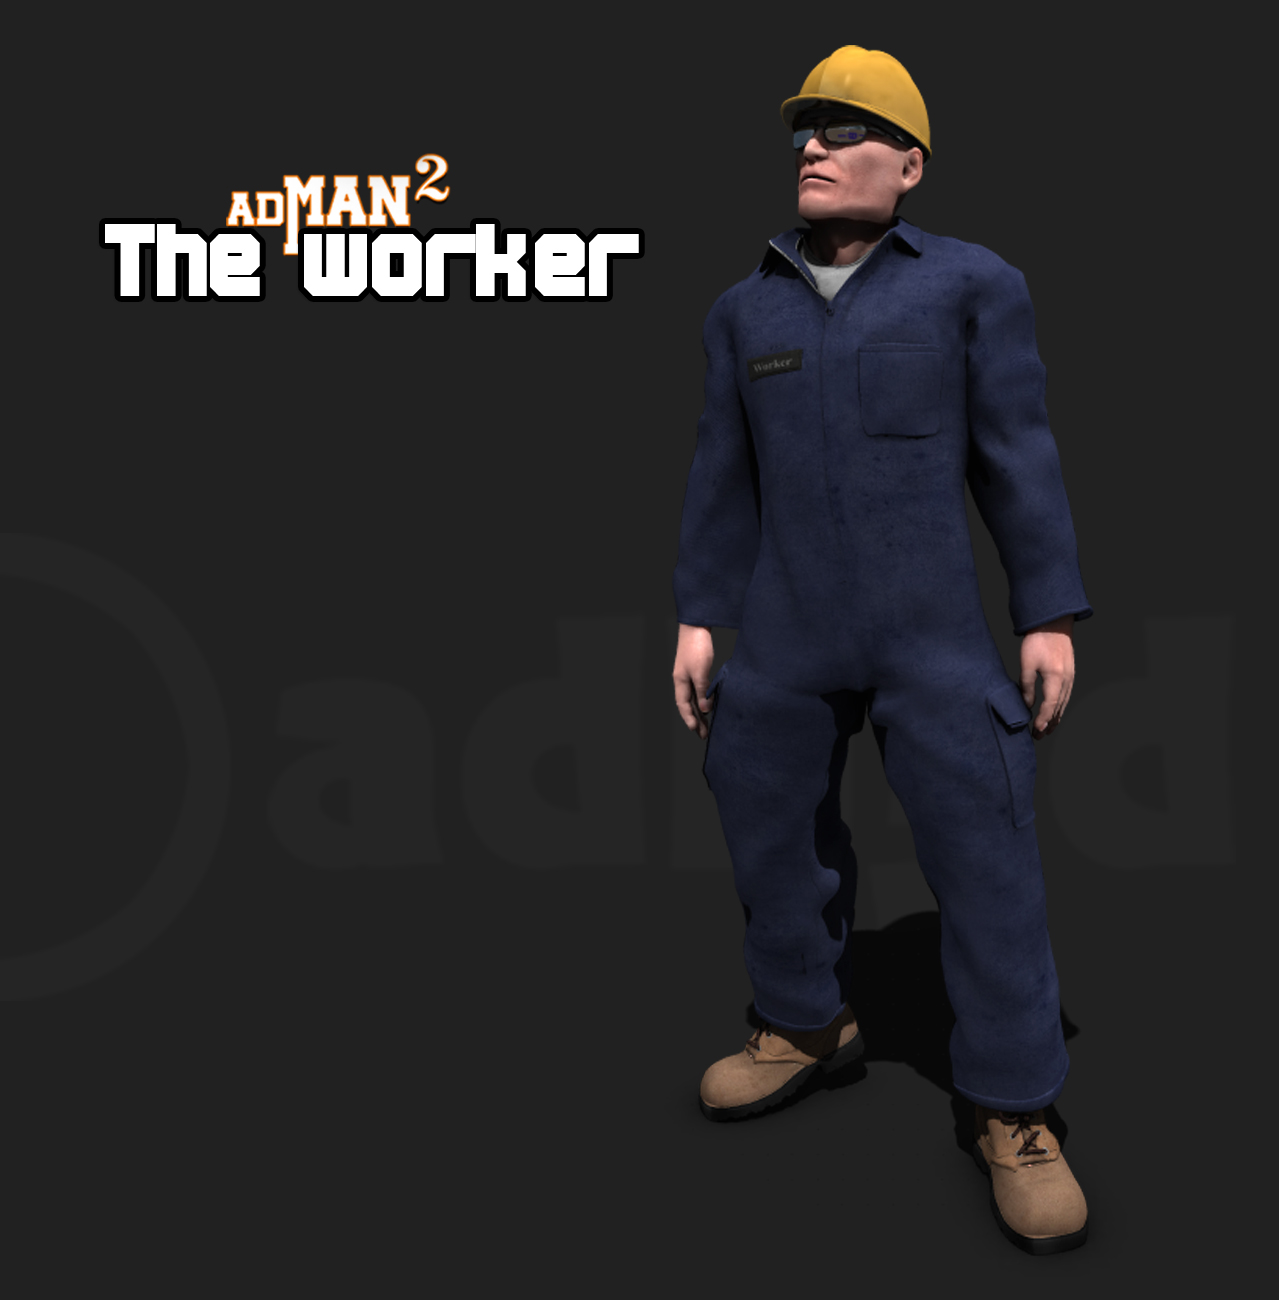 The worker for adman v2 - Extended License